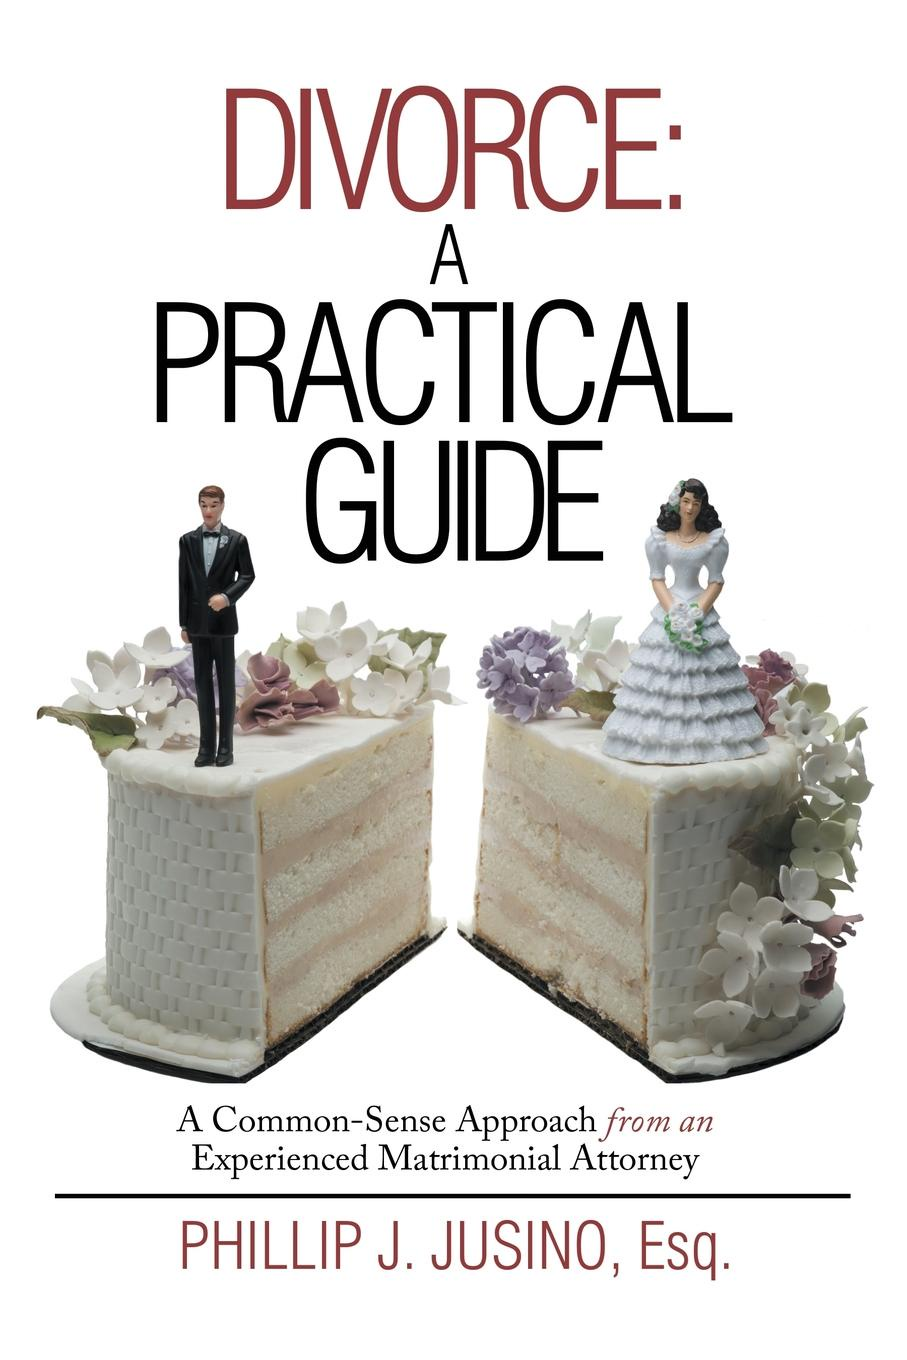 Esq. Phillip J. Jusino Divorce. A Practical Guide: A Common-Sense Approach from an Experienced Matrimonial Attorney dana muir m a manager s guide to employment law how to protect your company and yourself